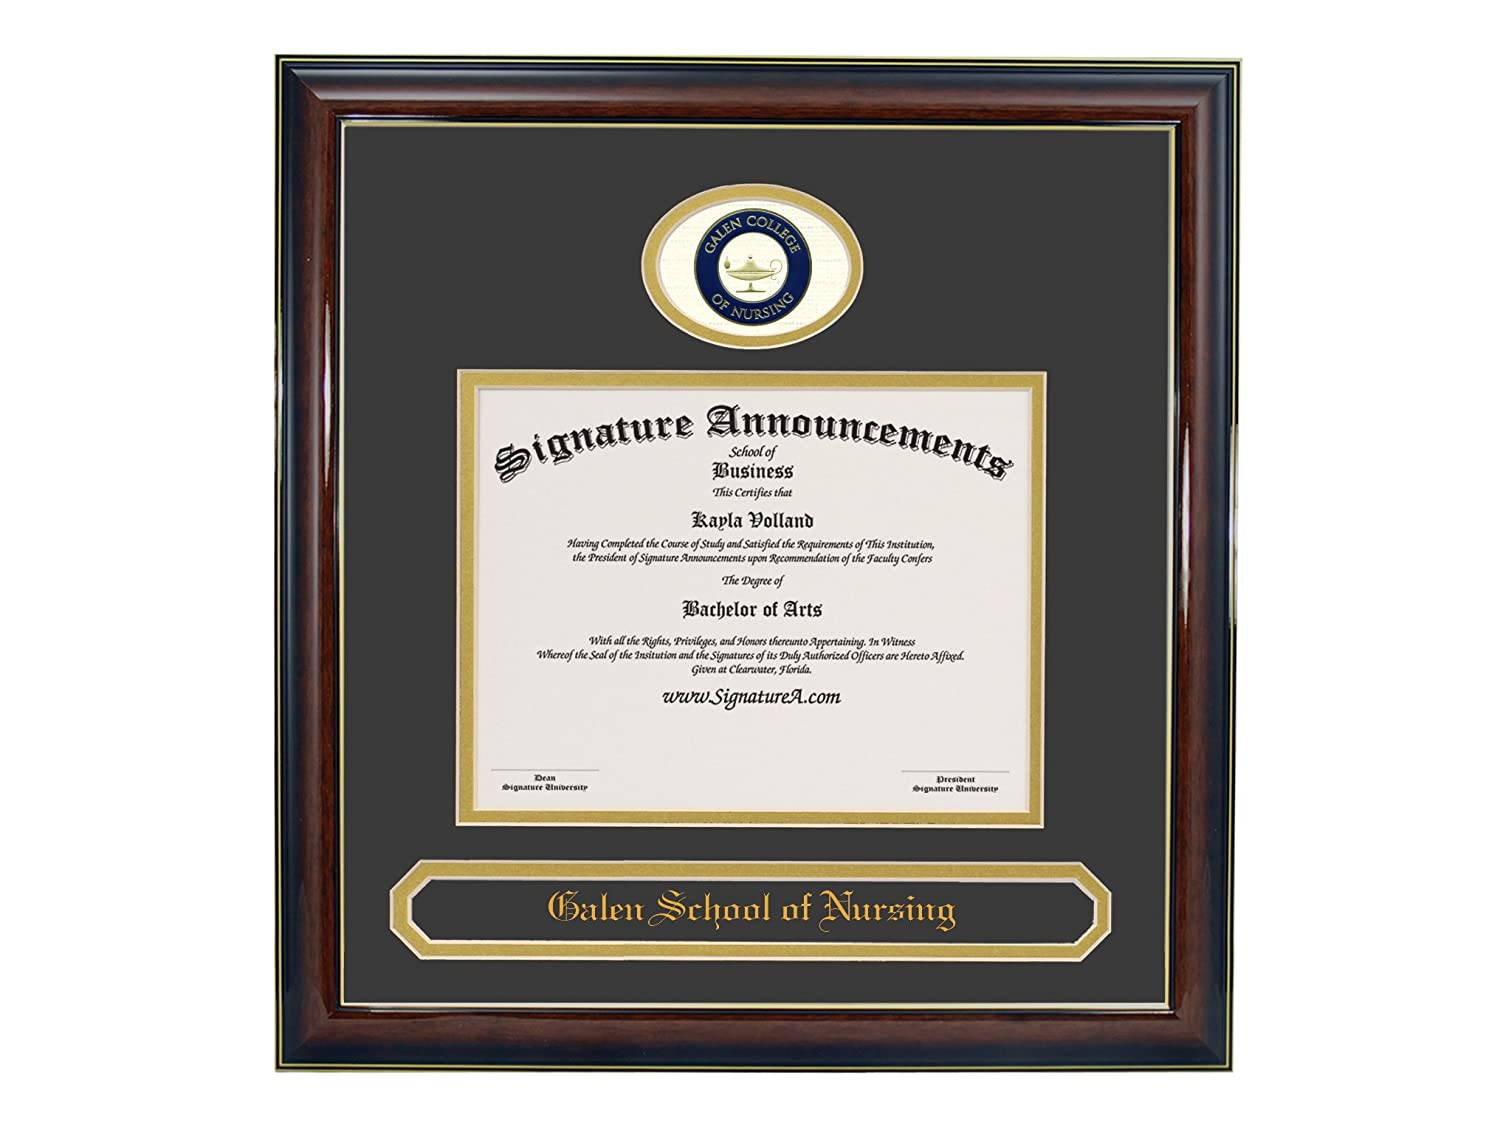 16 x 16 Signature Announcements Galen-College-of-Nursing Undergraduate Professional//Doctor Sculpted Foil Seal /& Name Graduation Diploma Frame Gold Accent Gloss Mahogany